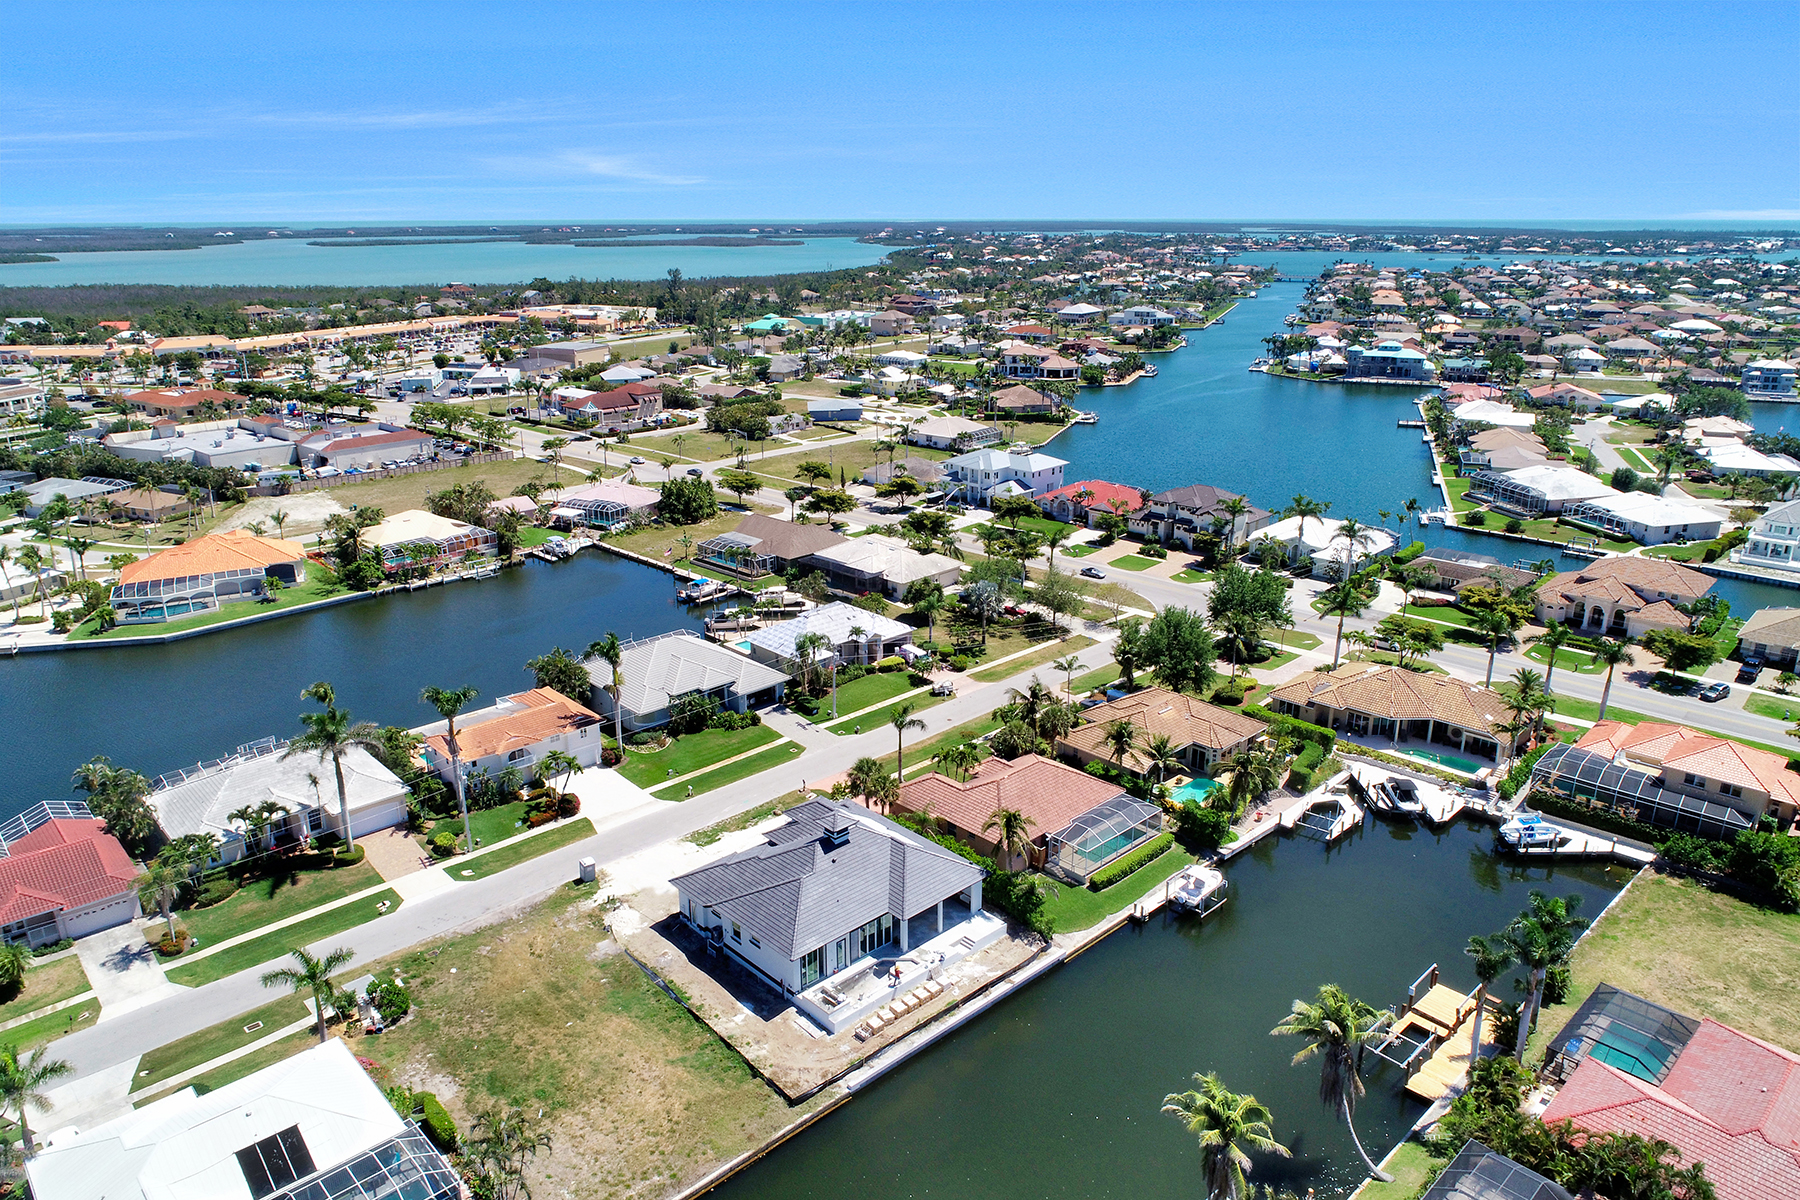 Single Family Home for Sale at MARCO ISLAND 32 Gulfport Ct, Marco Island, Florida 34145 United States